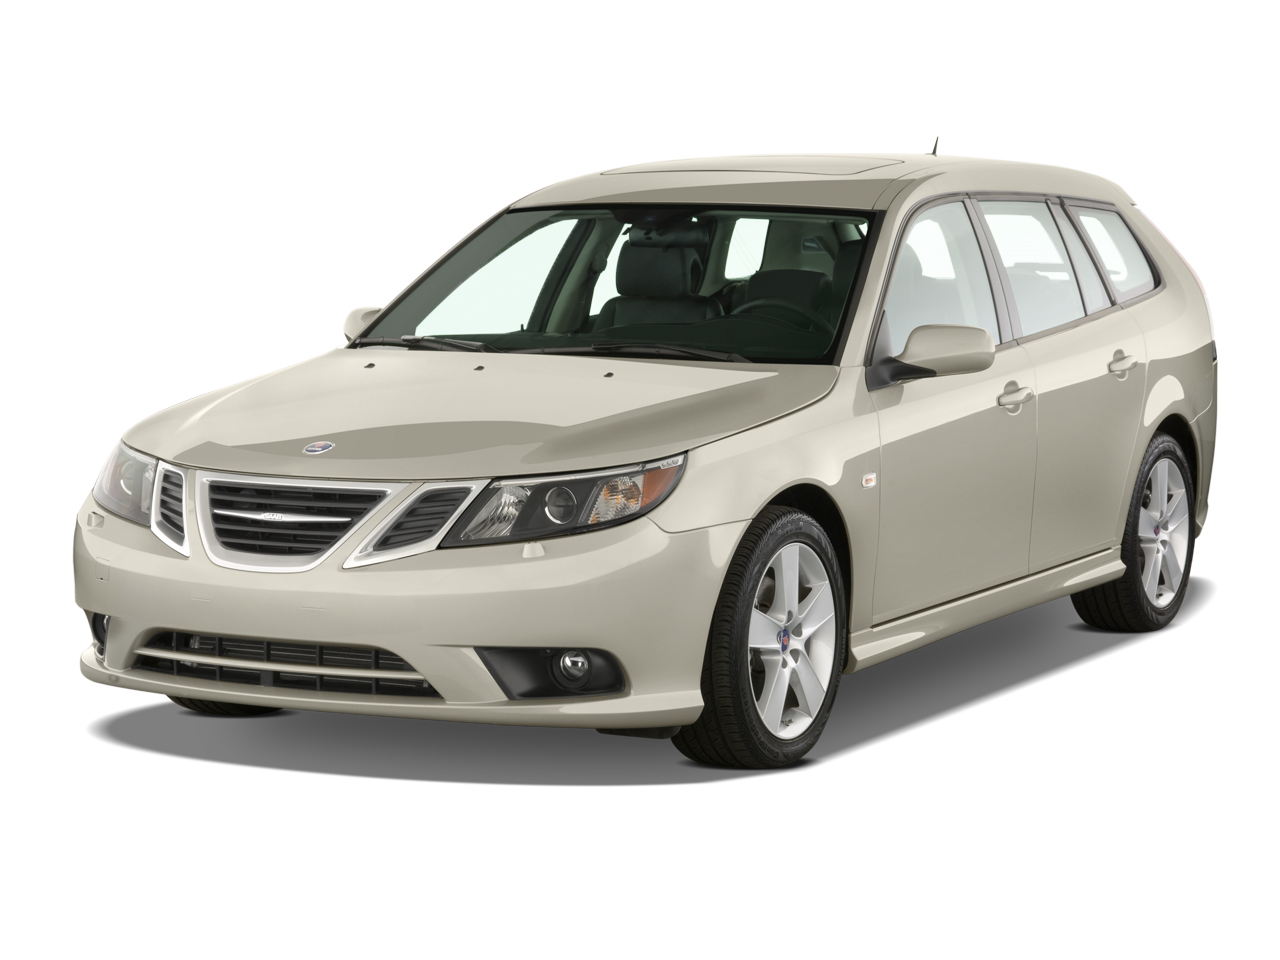 2011 saab 9 3 review ratings specs prices and photos. Black Bedroom Furniture Sets. Home Design Ideas